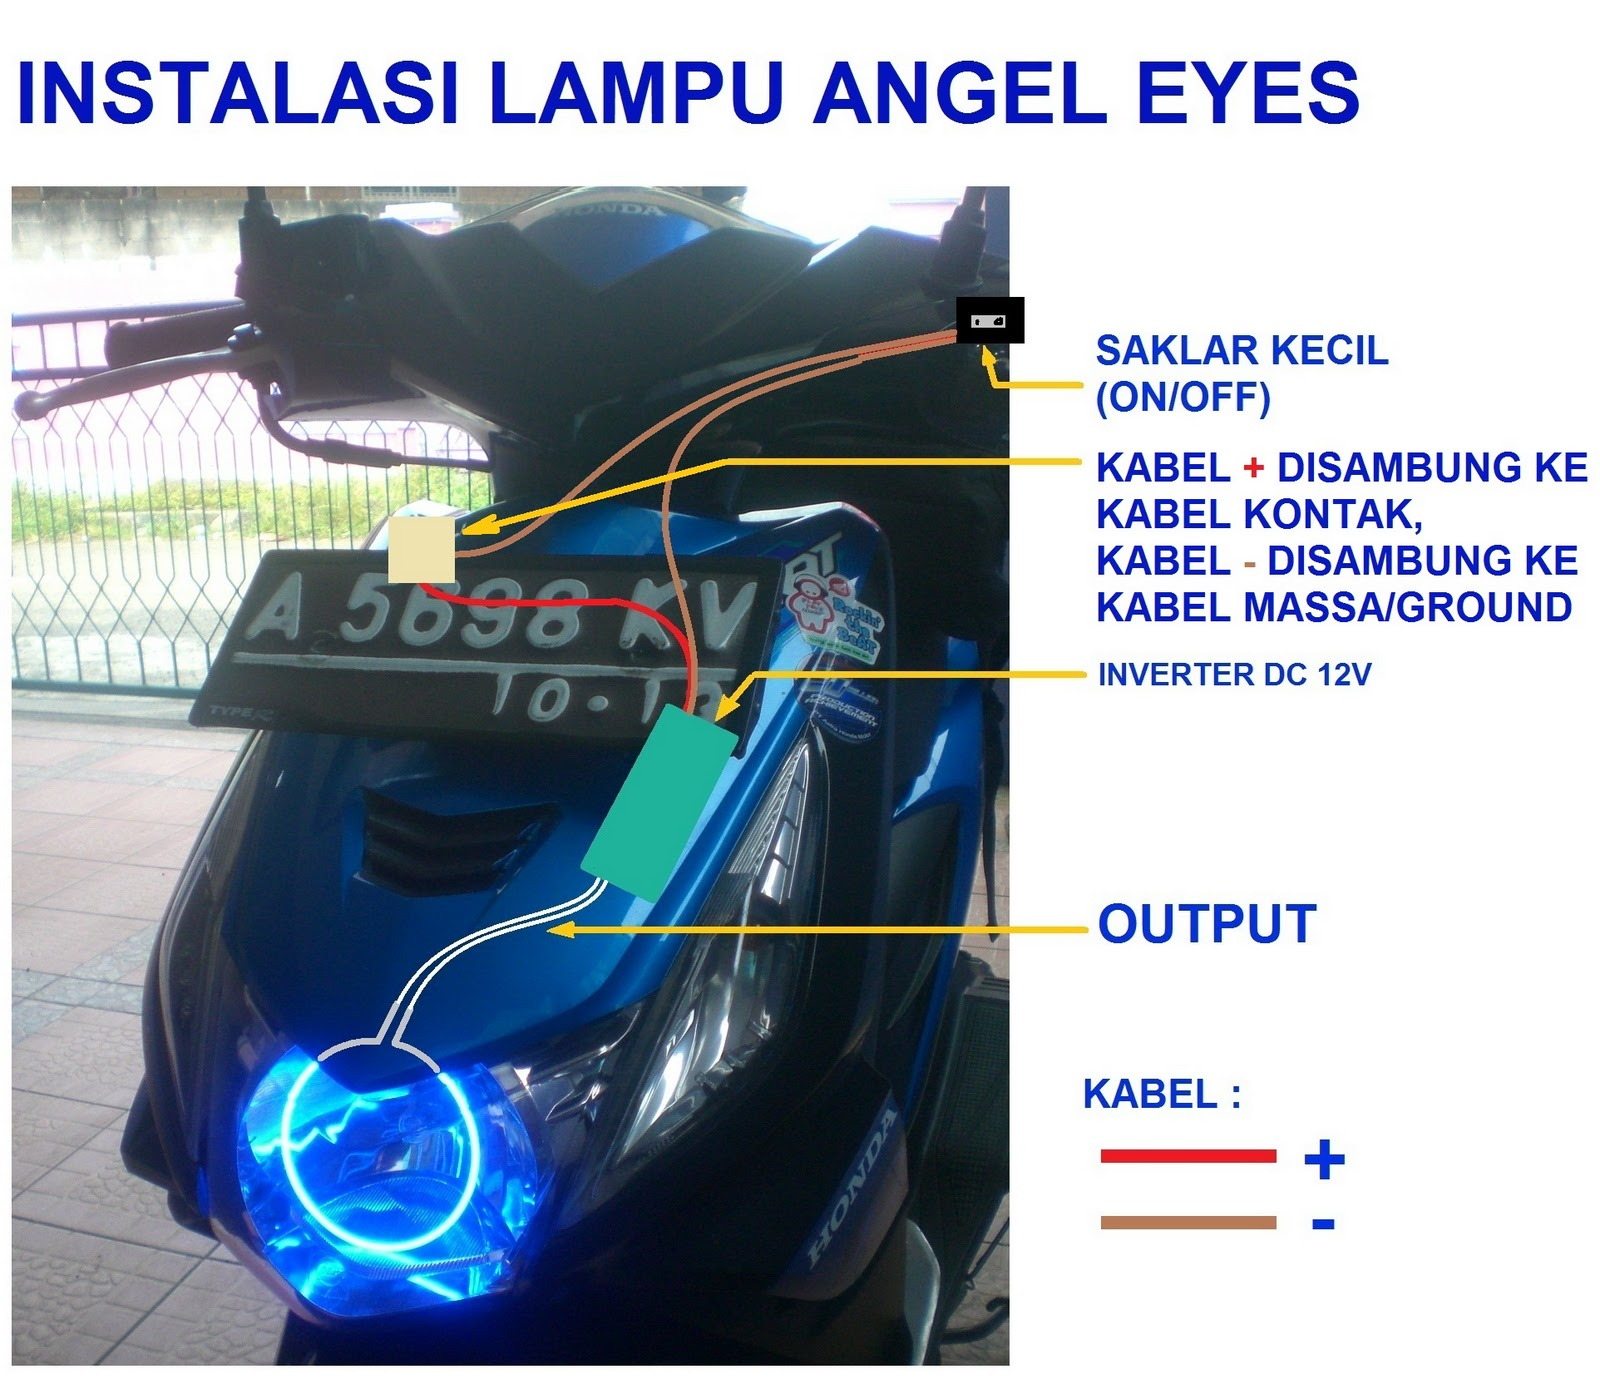 Pasang Lampu Angel Eyes Yuk